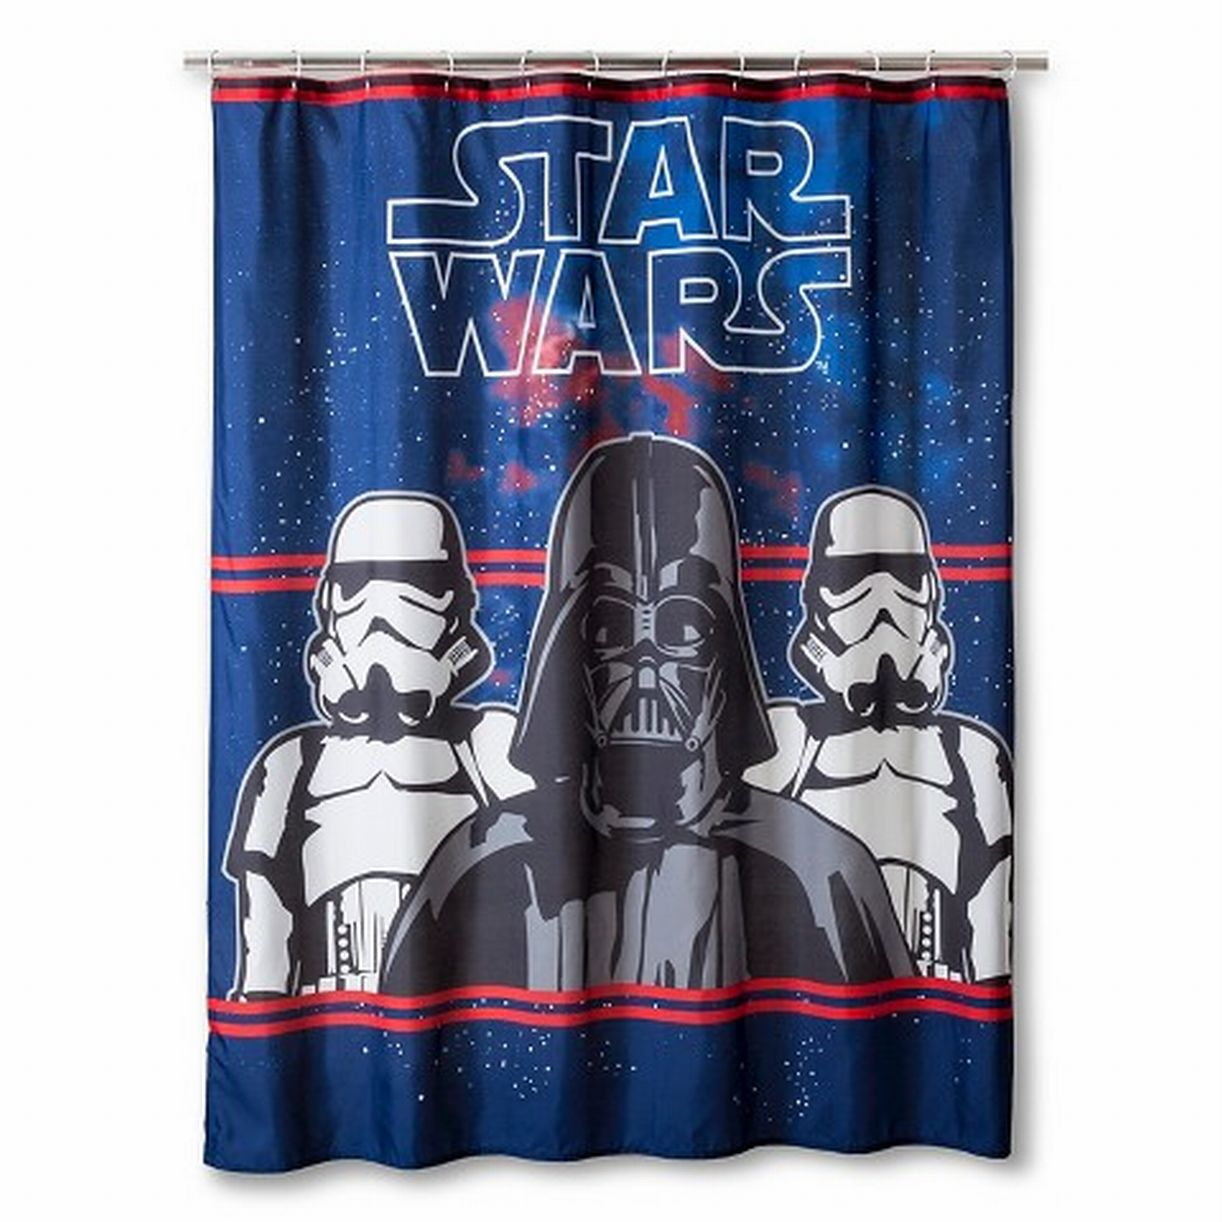 Disney Star Wars Darth Vader Fabric Shower Curtain Kids Bath Decor